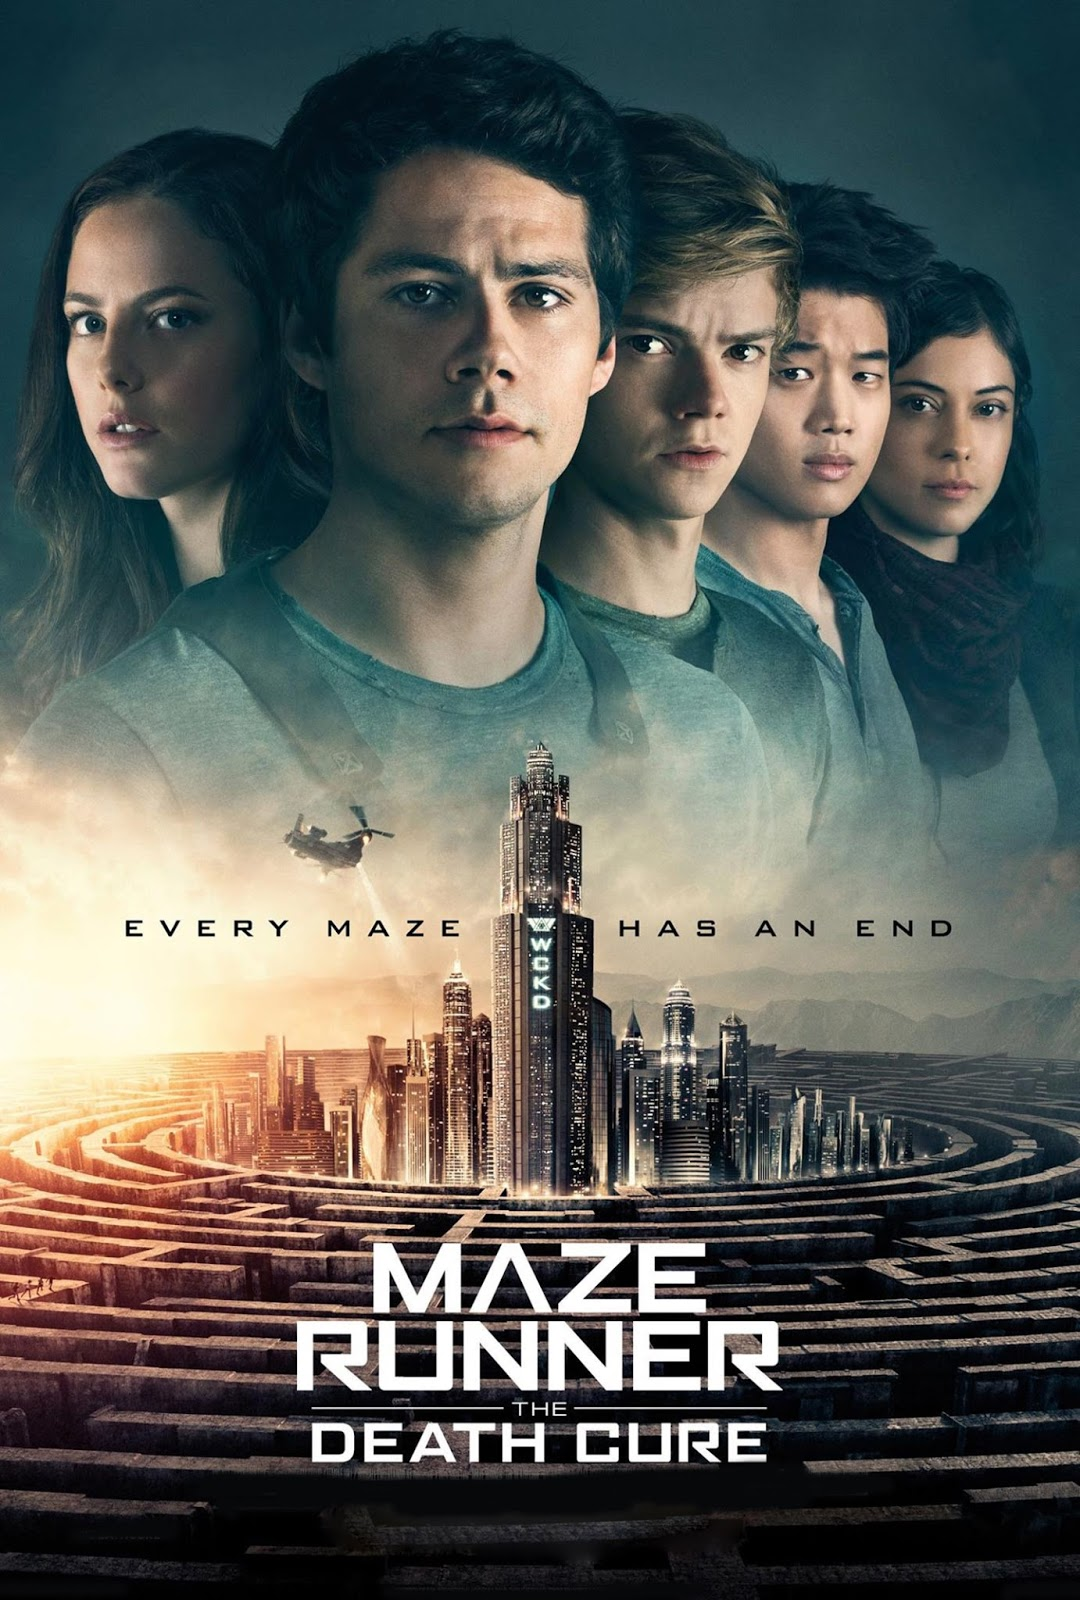 Maze Runner: The Death Cure [2018] [DVDR] [NTSC] [Video Limpio] [CUSTOM HD] [Subtitulado]